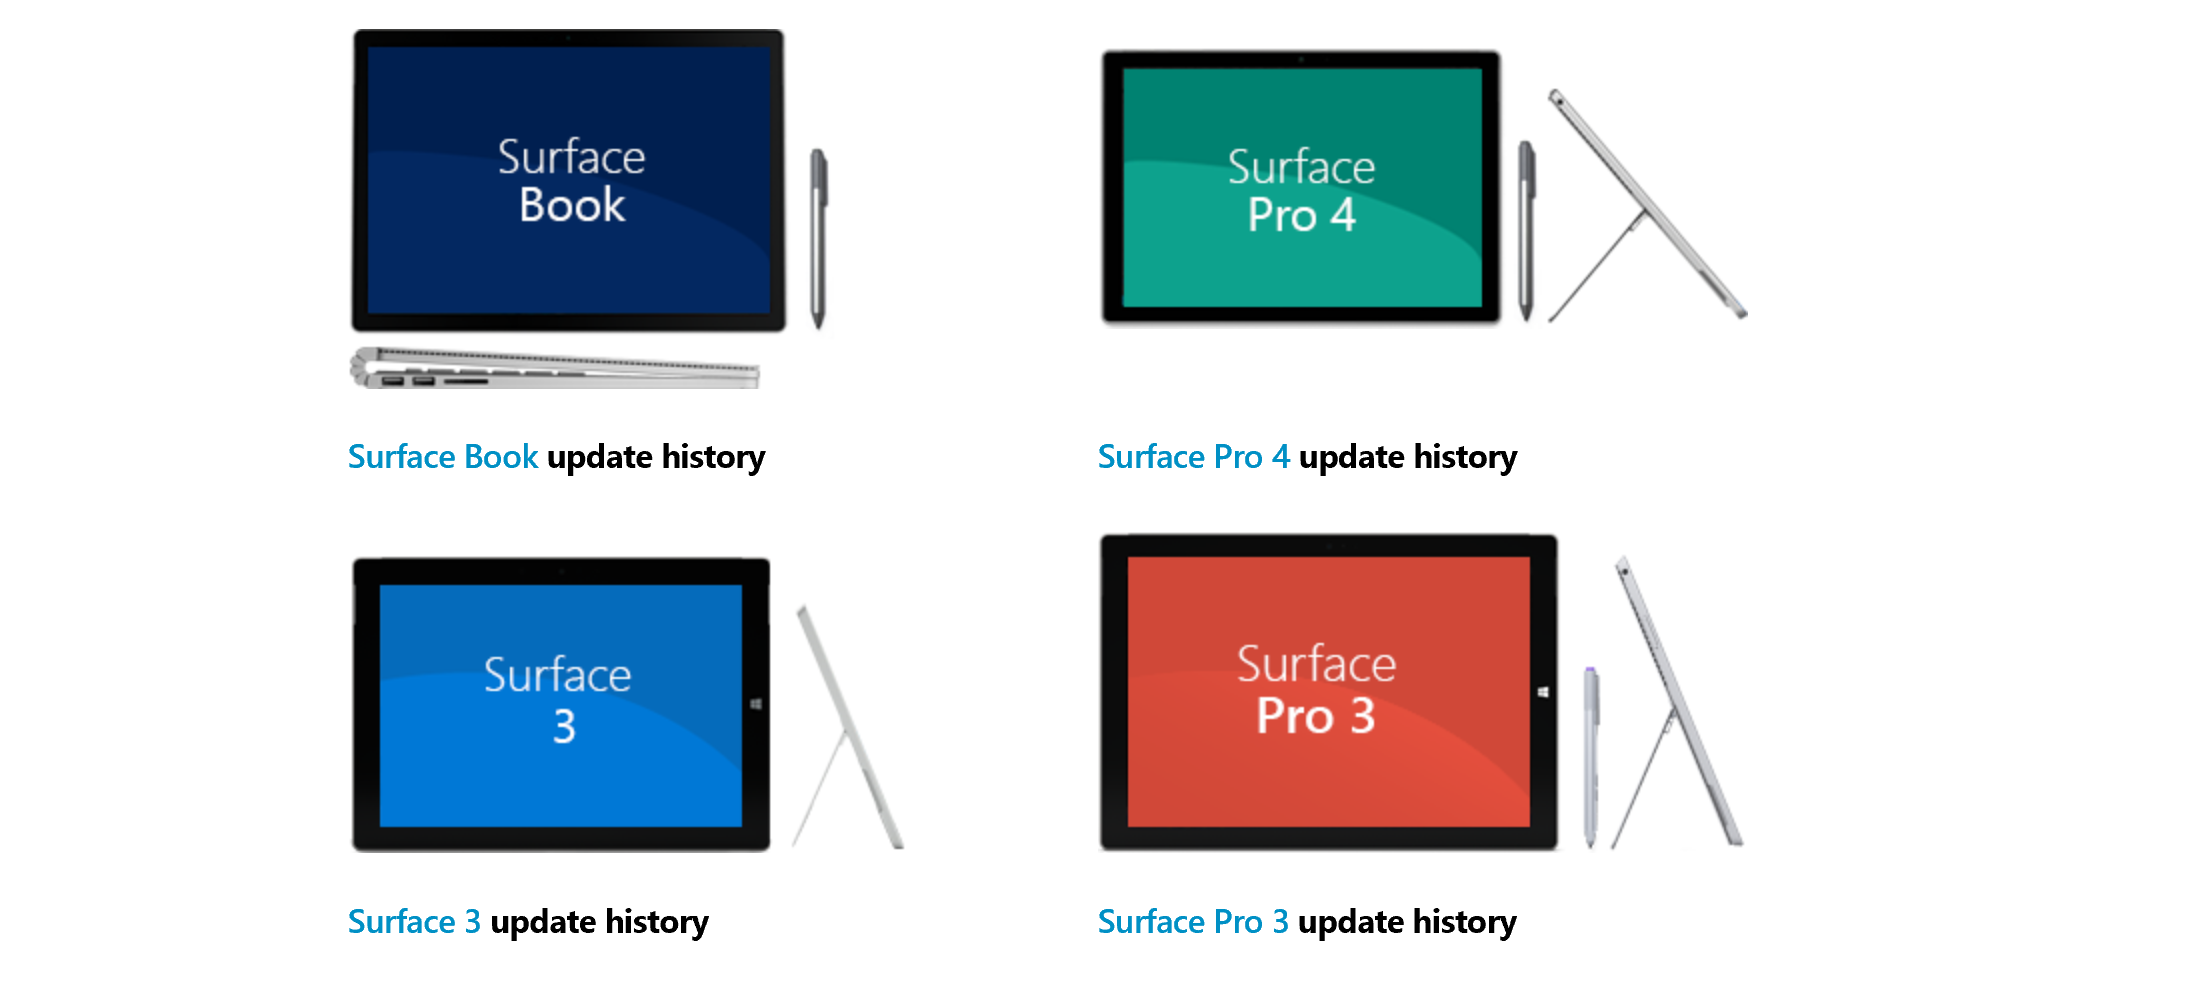 Updates | All of the latest Surface models received updates